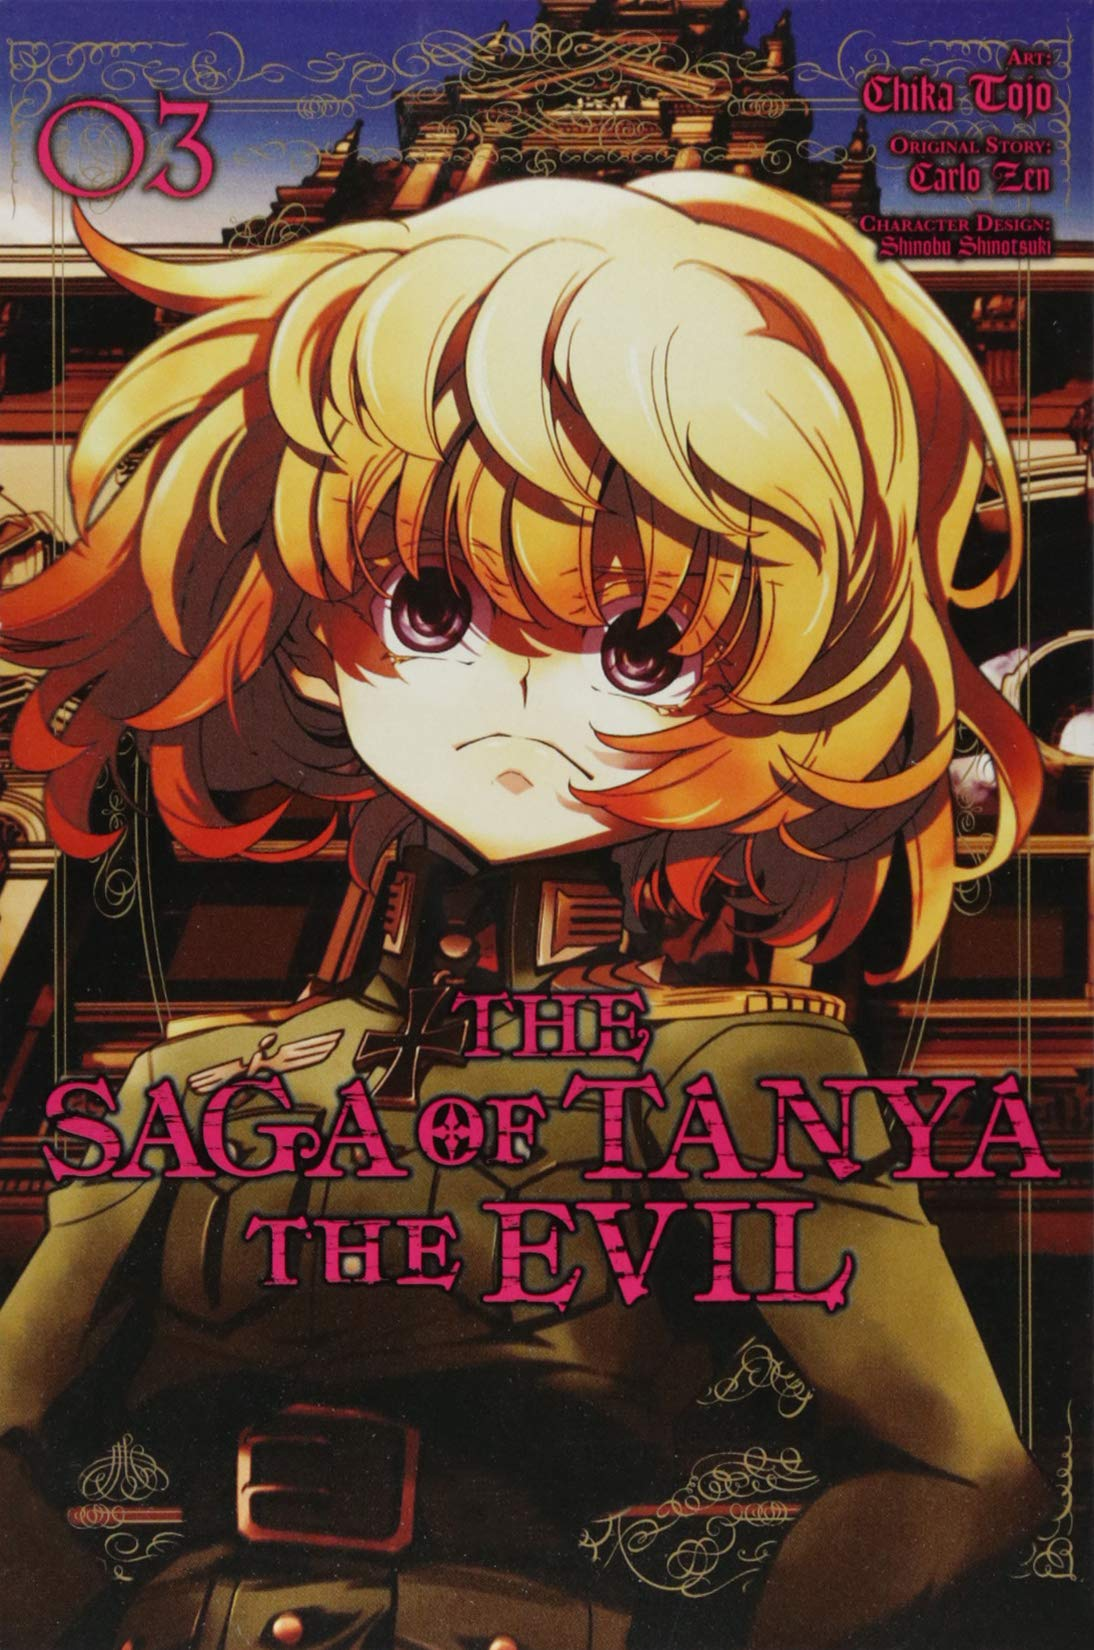 The Saga Of Tanya The Evil Vol. 3  Manga   The Saga Of Tanya The Evil  Manga  Band 3